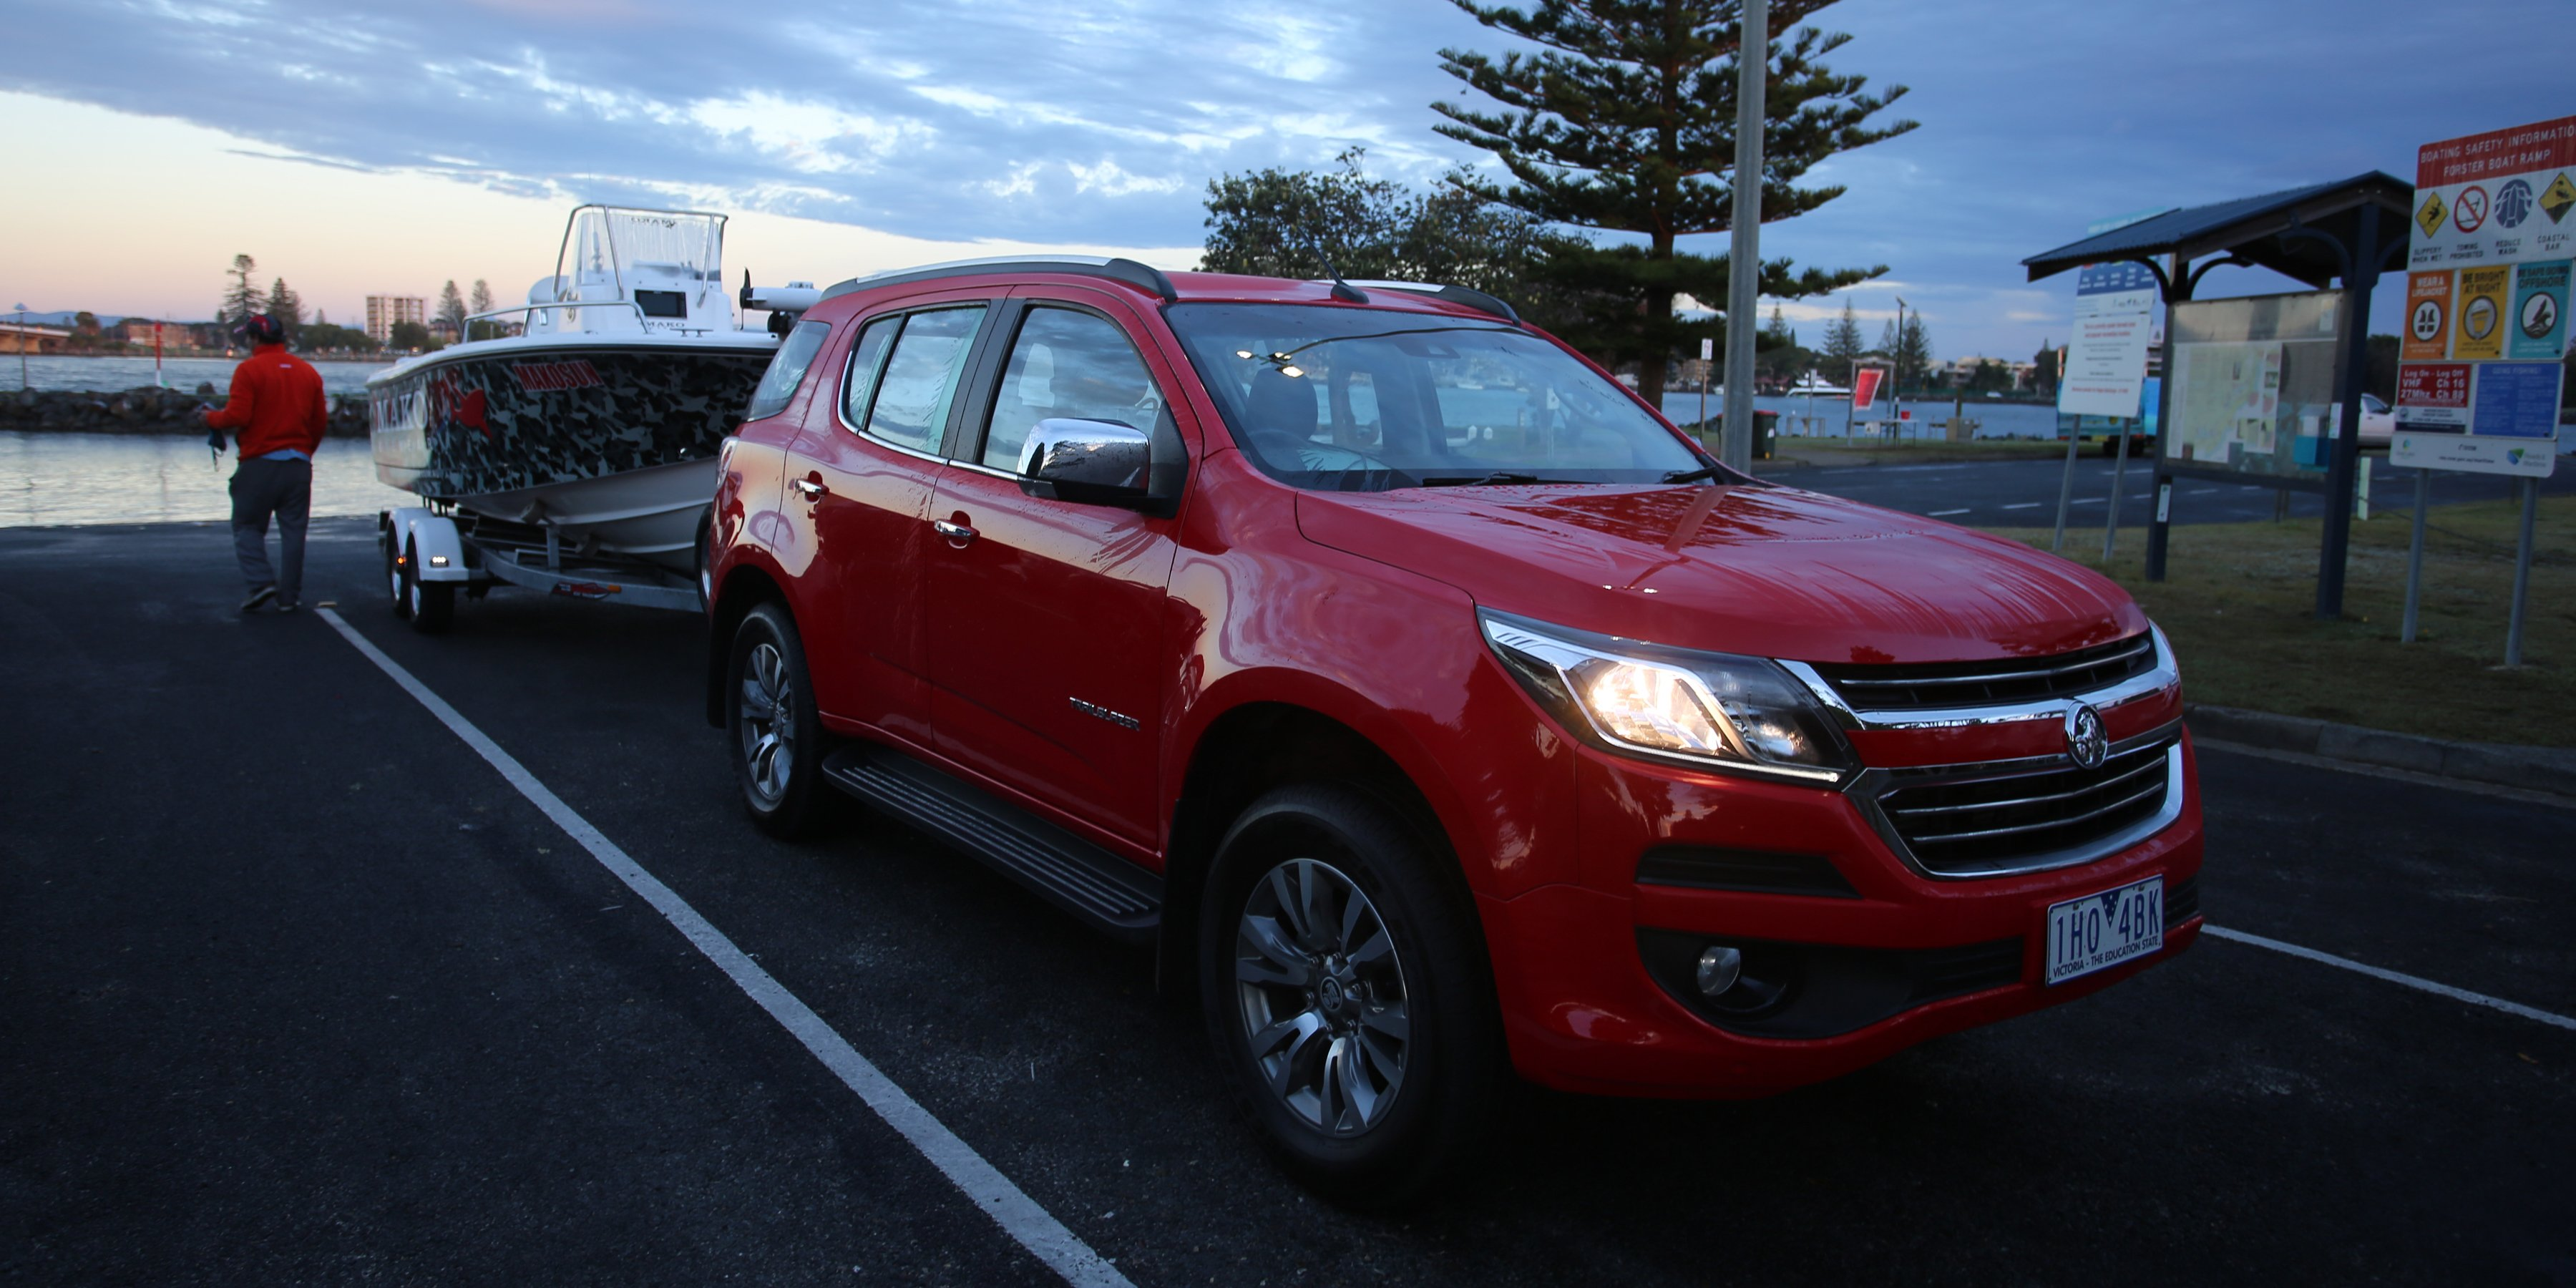 2017 Holden Trailblazer LTZ review: Towing - Photos (1 of 11)